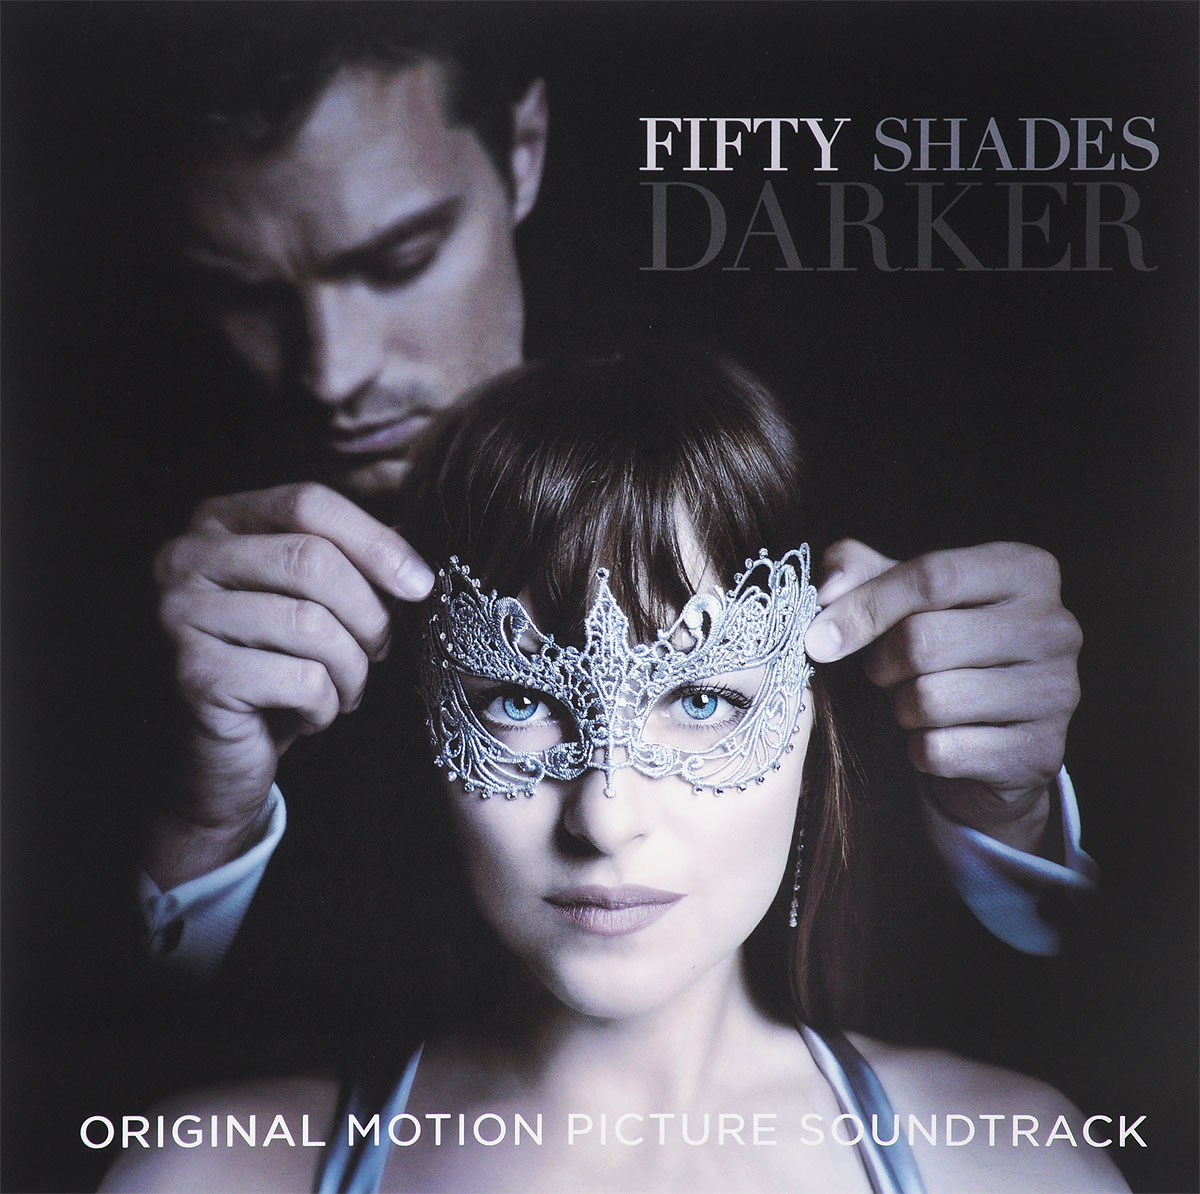 Тейлор Свифт,ZAYN,Halsey,Jry,Rooty,Tove Lo,Toulouse,Джон Ледженд,The-Dream,Ник Джонс Fifty Shades Darker. Original Motion Picture Soundtrack (2 LP) james e l fifty shades darker